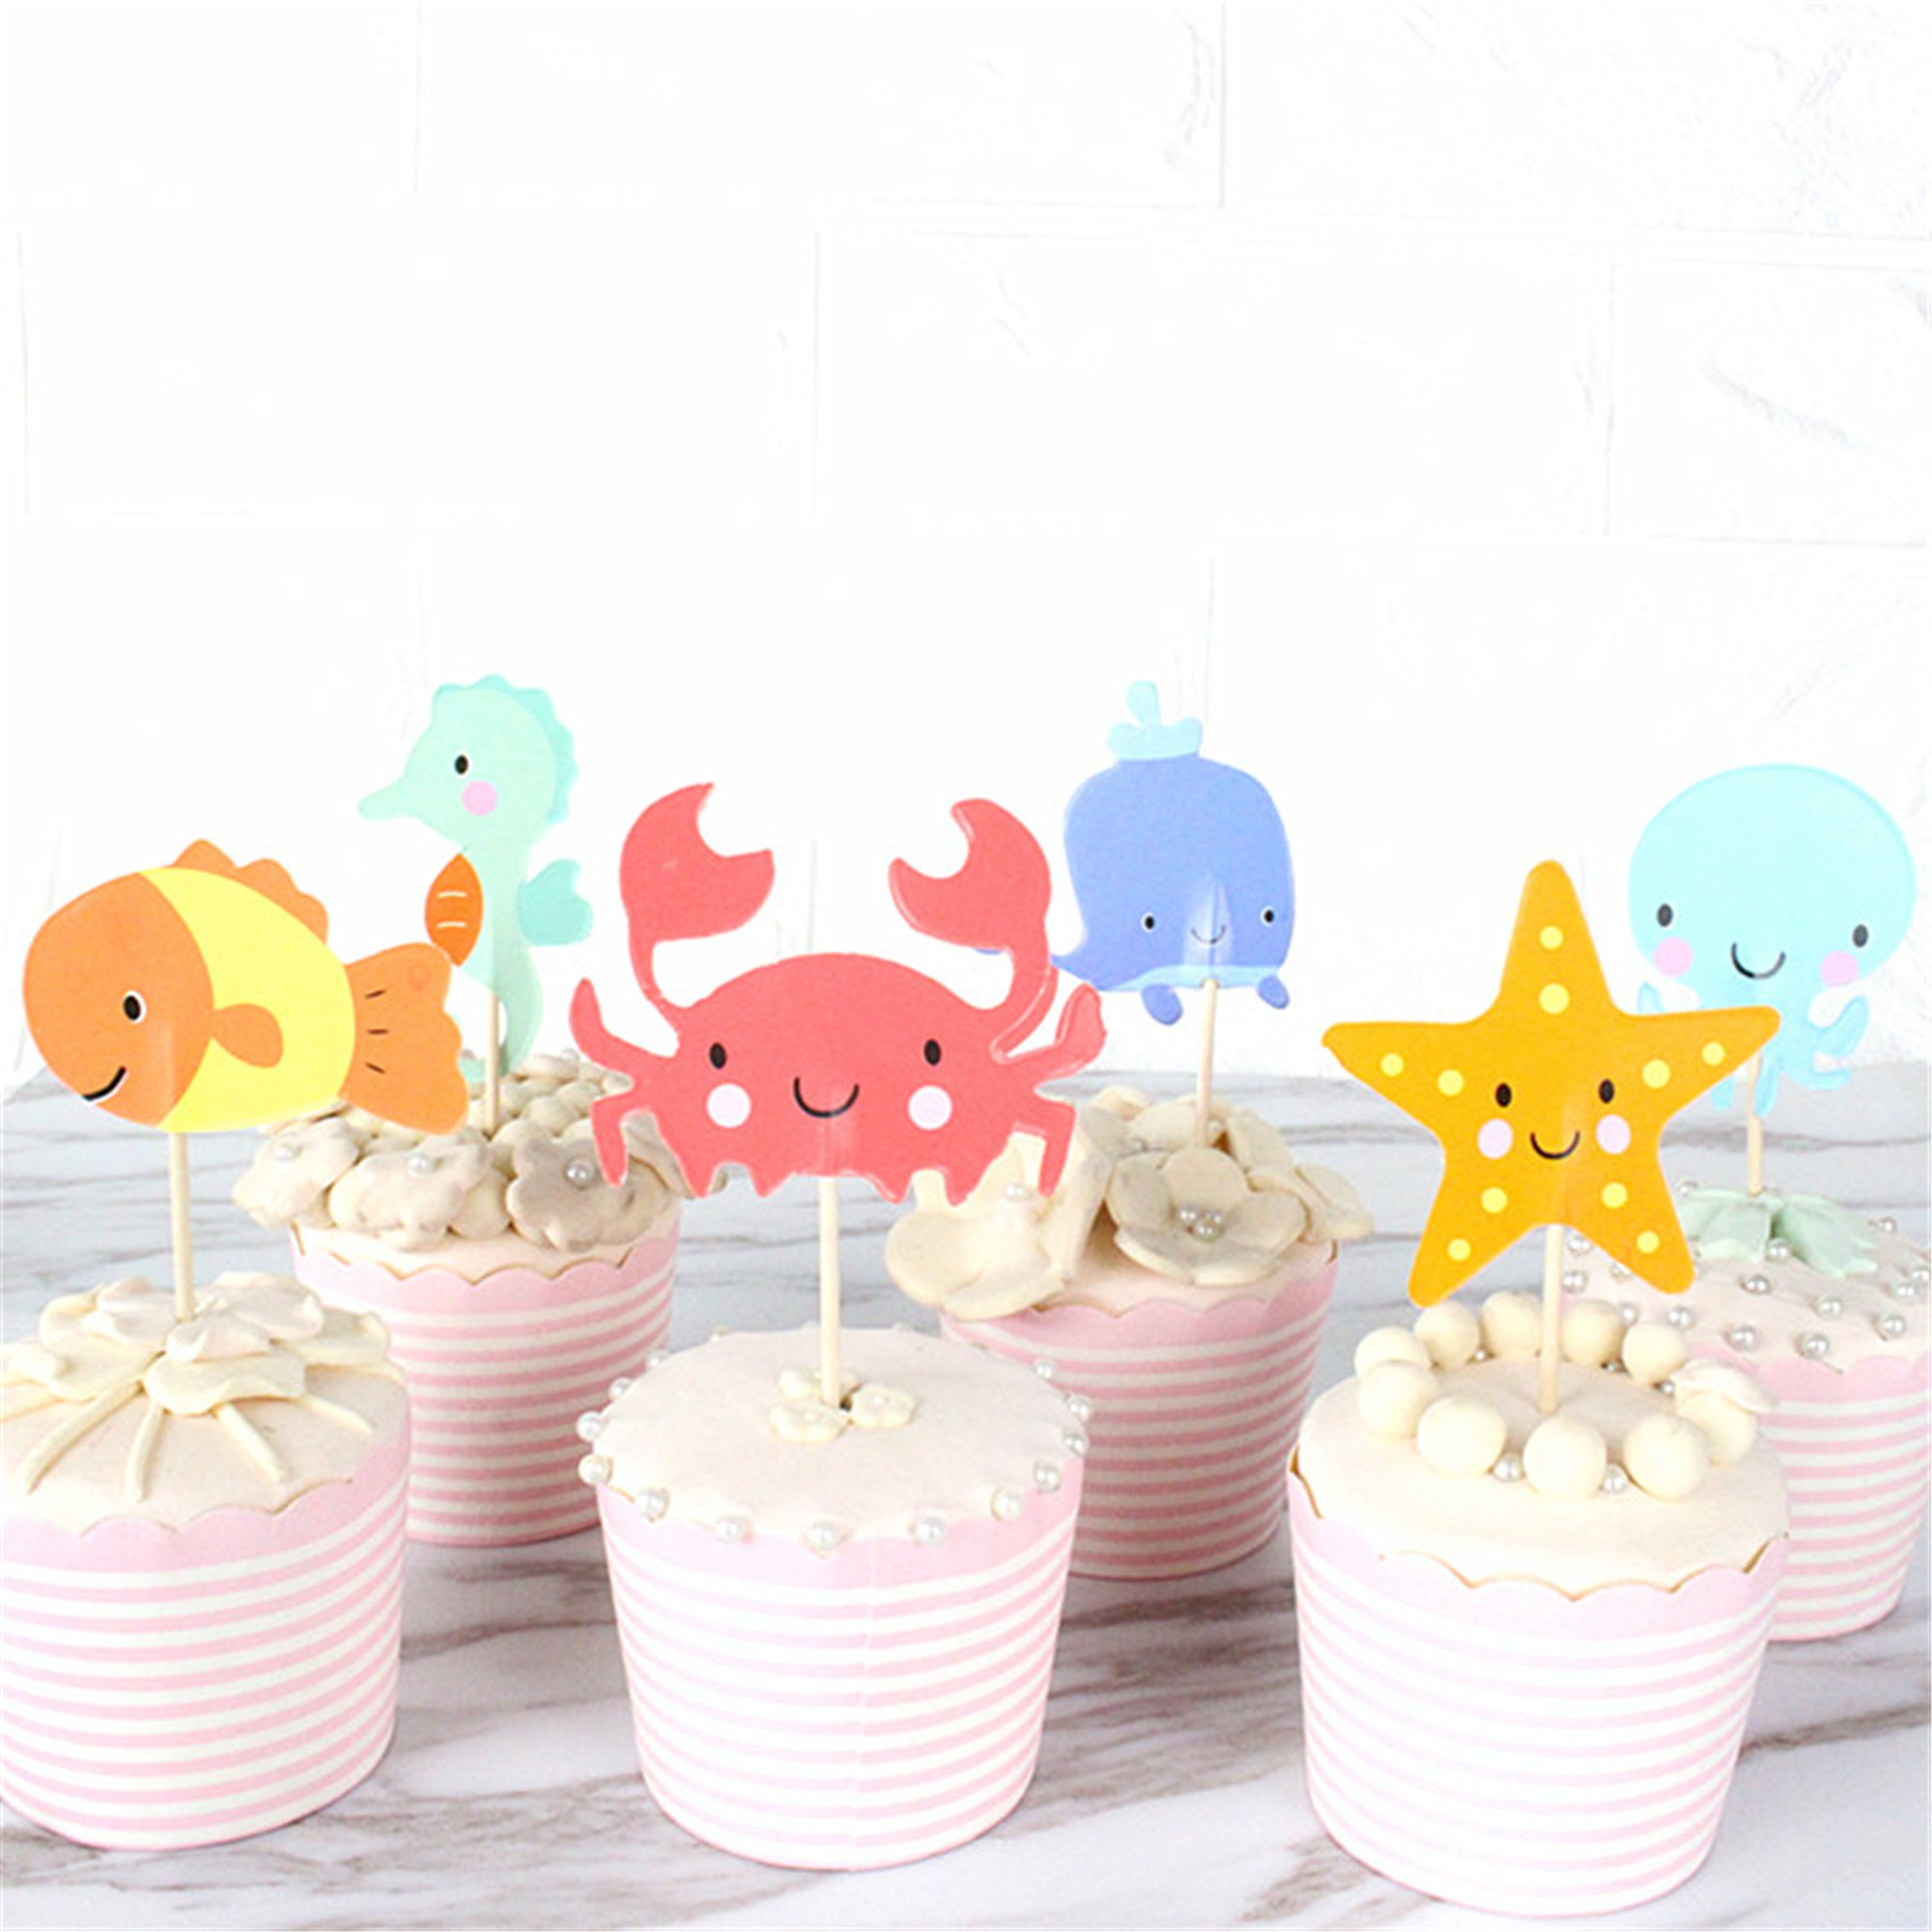 Wolpark 48 PCS Ocean Theme Cupcake Topper Cake Picks Decoration for Baby Shower Birthday Party Favors Starfish Crab Whale Seahorse Octopus and Clownfish